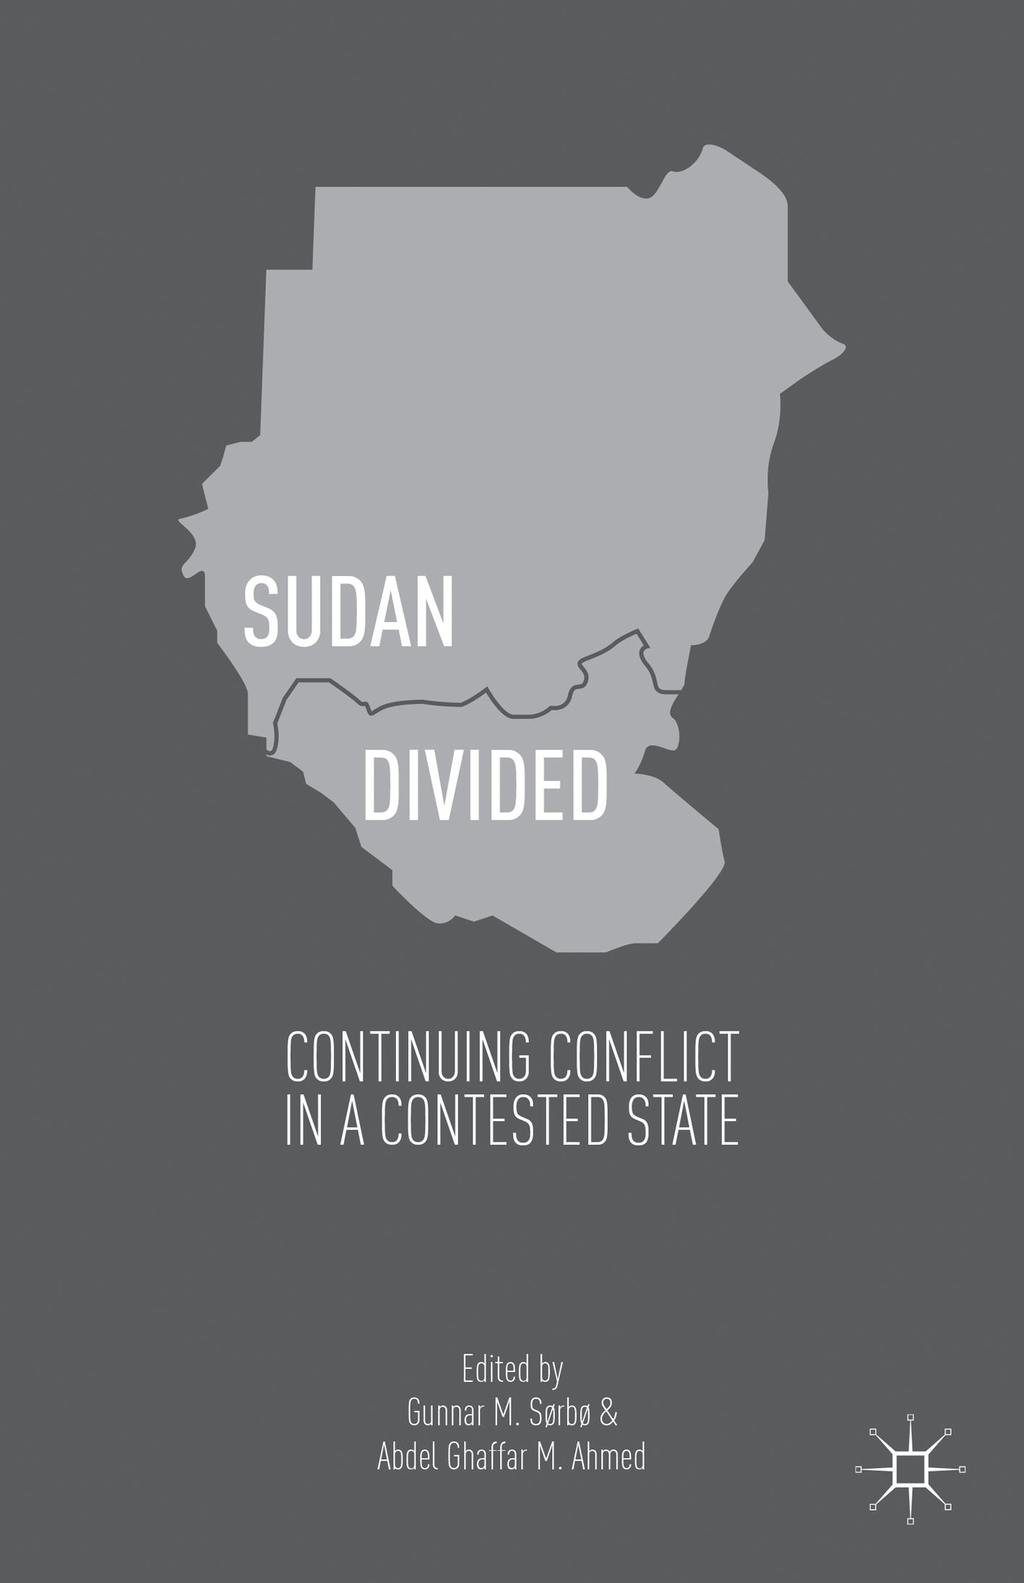 Sudan Divided Continuing Conflict in a Contested State